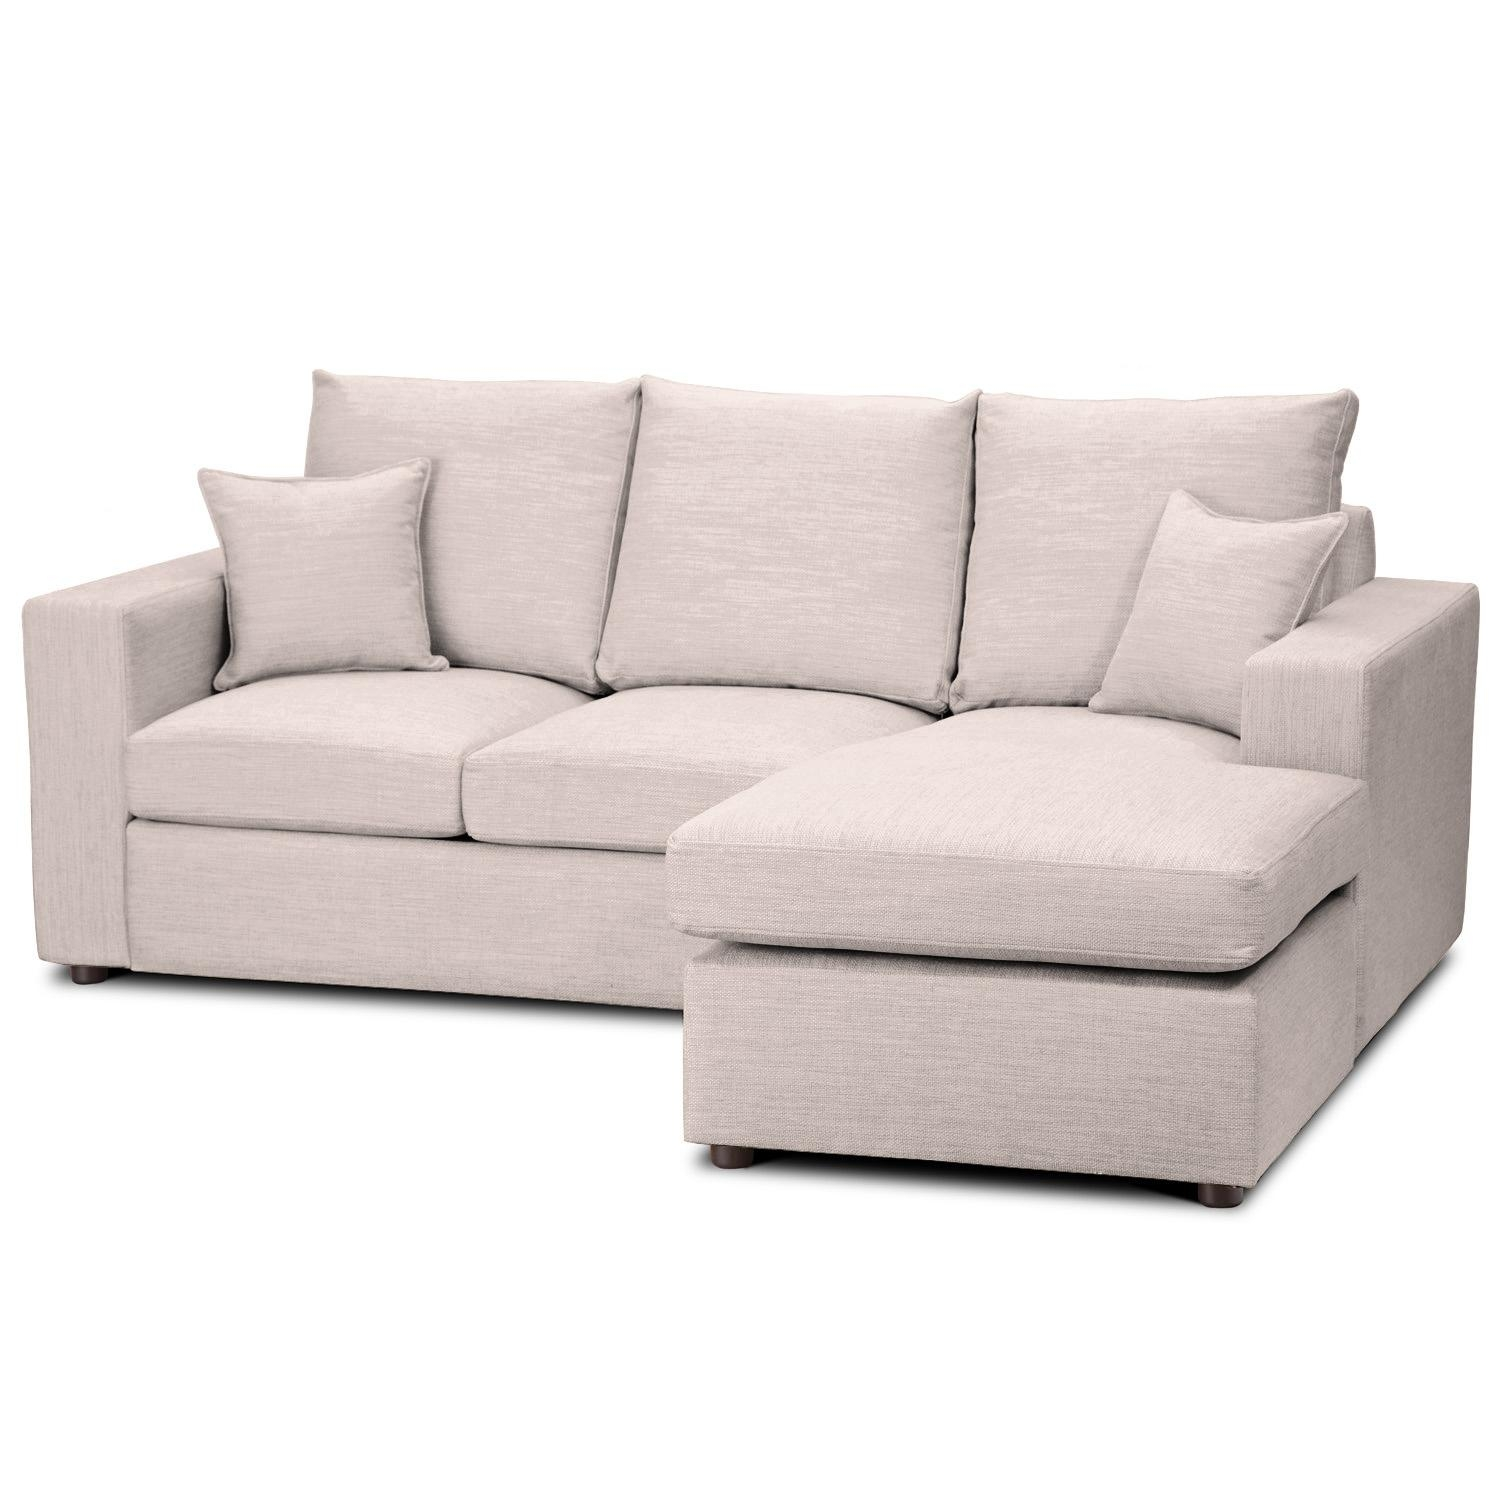 Furniture: Vivacious Chaise Sofa Bed With Softly Bed Foam For Pertaining To Cushion Sofa Beds (Image 7 of 23)